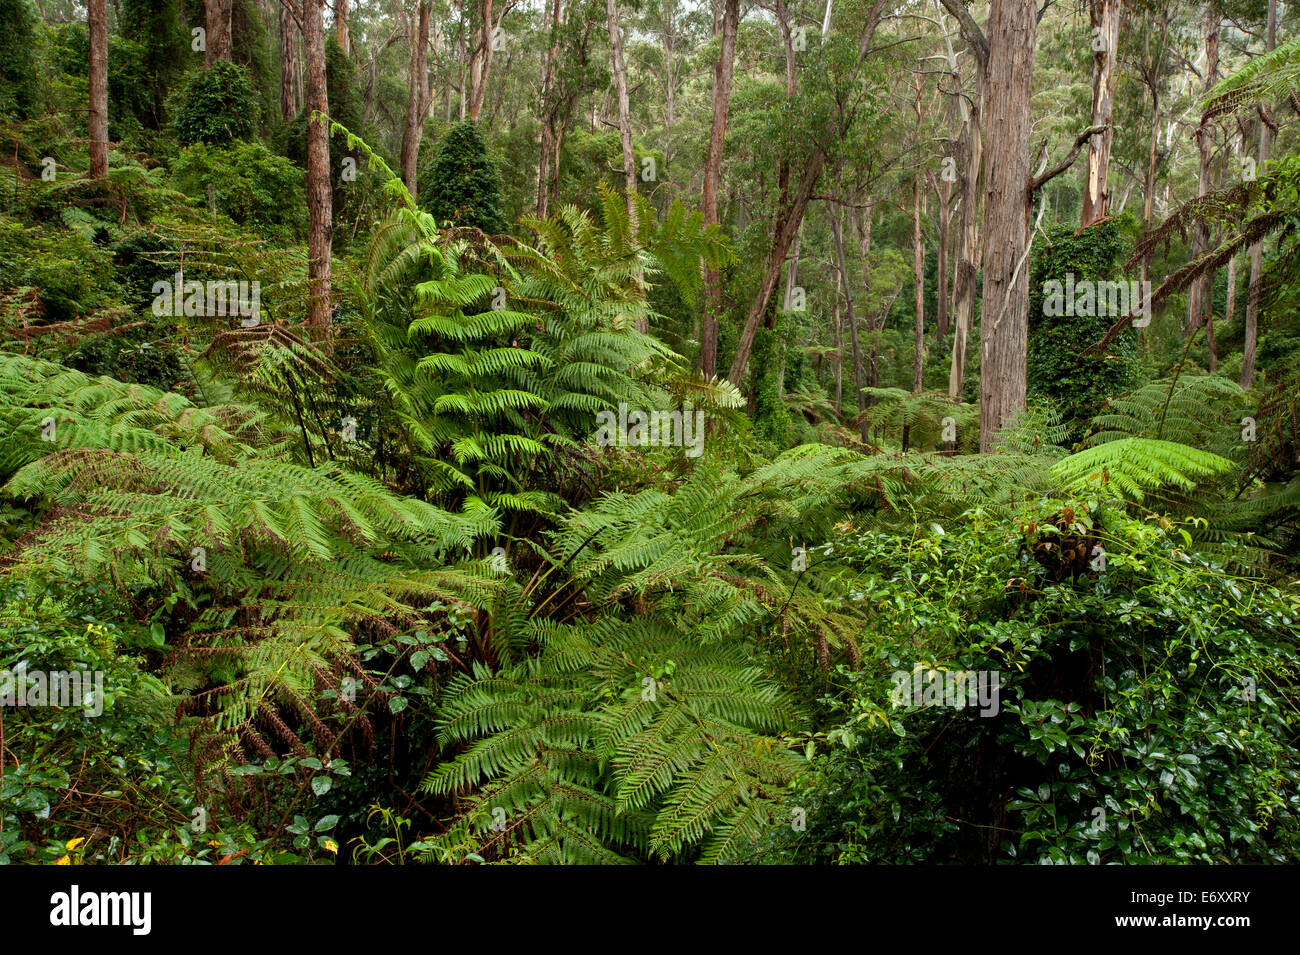 Lush forest in the Martins Creek Reserve, East Gippsland, Victoria, Australia - Stock Image